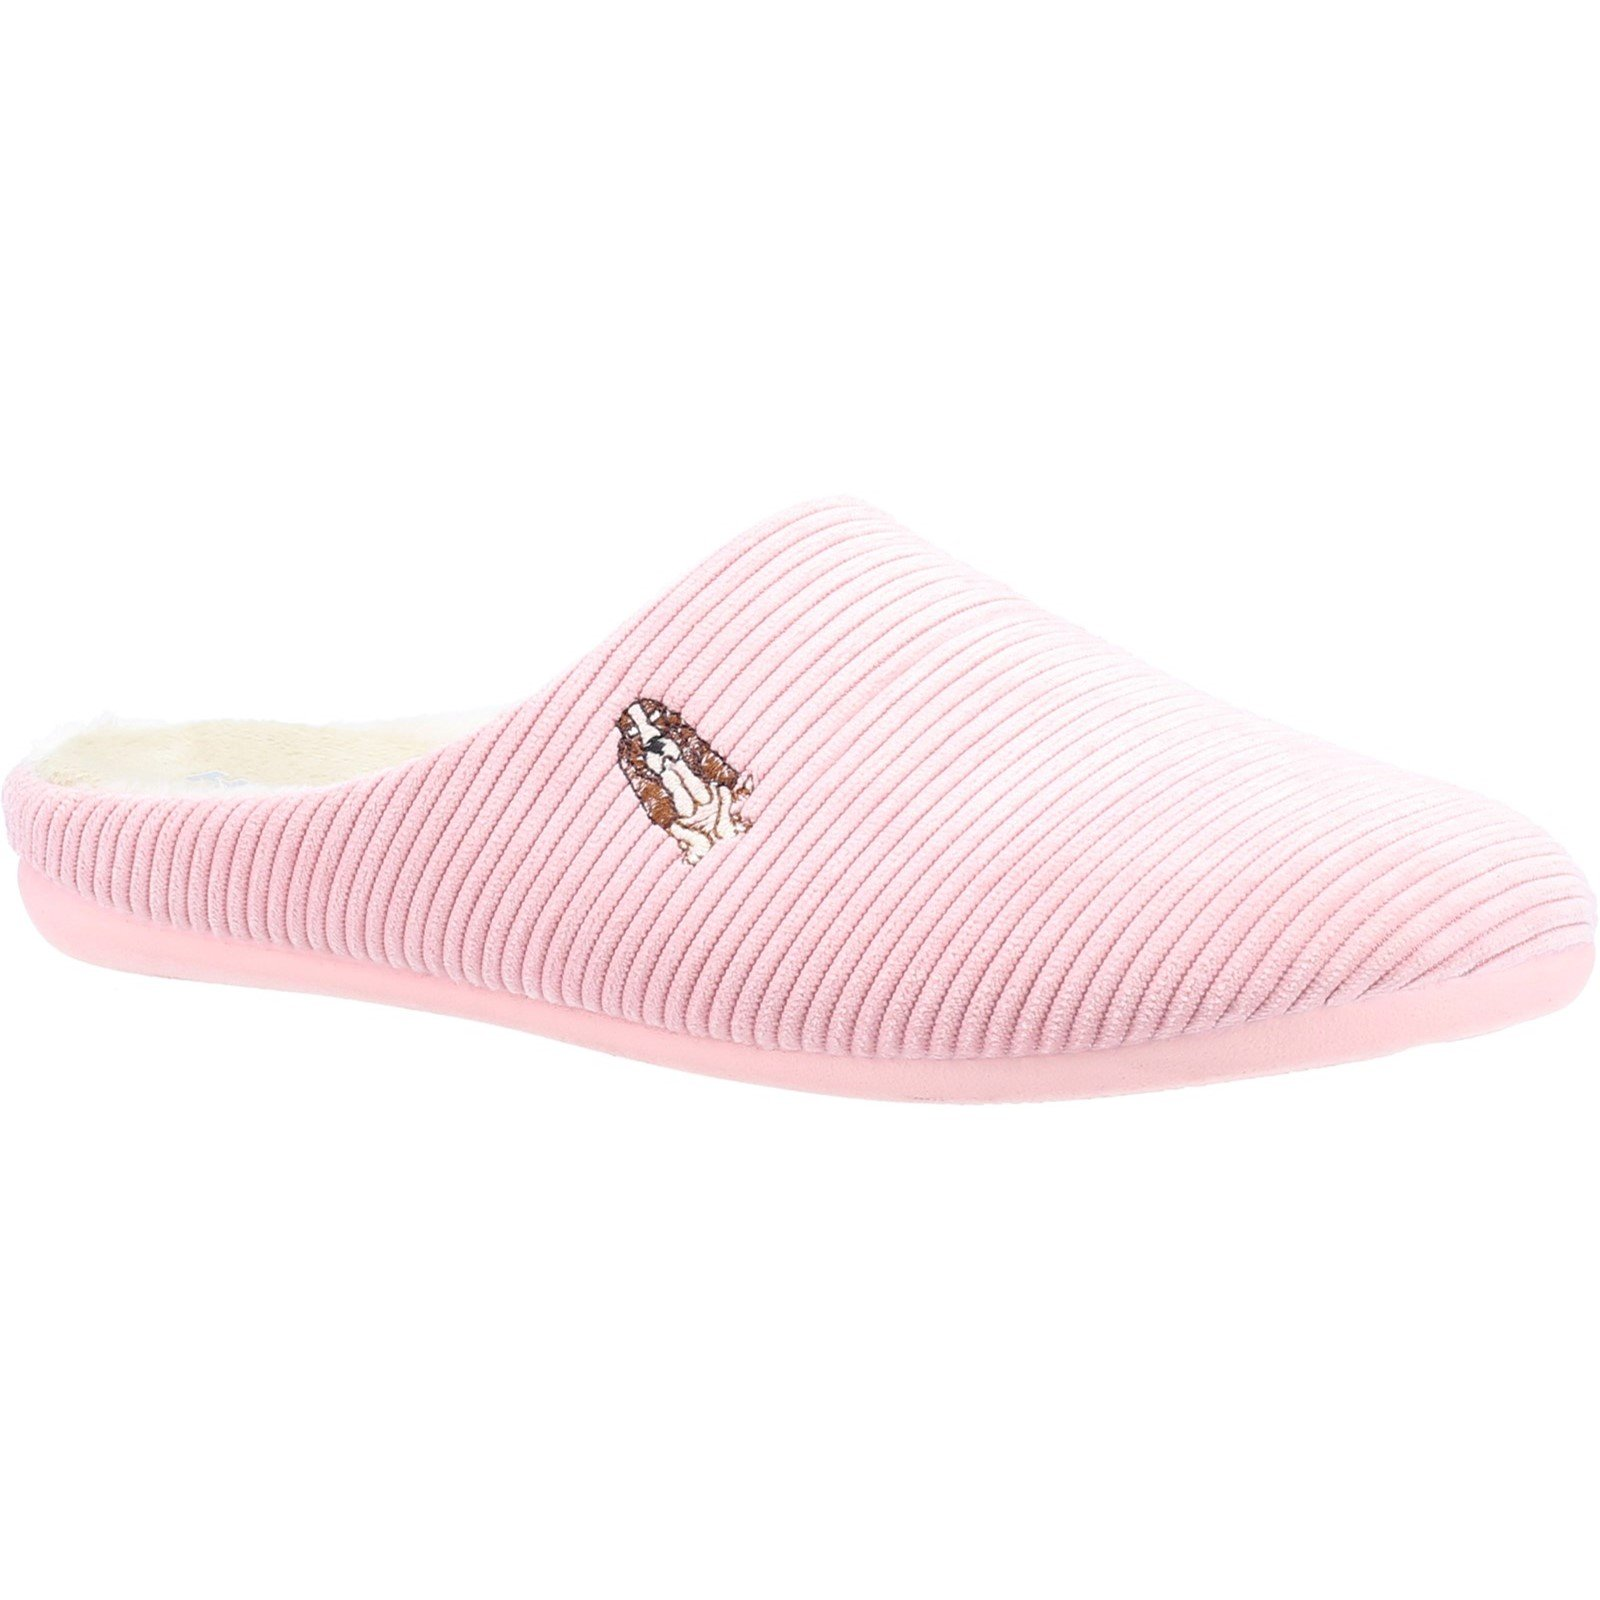 Hush Puppies Women's Raelyn Slipper Various Colours 32854 - Pink 8